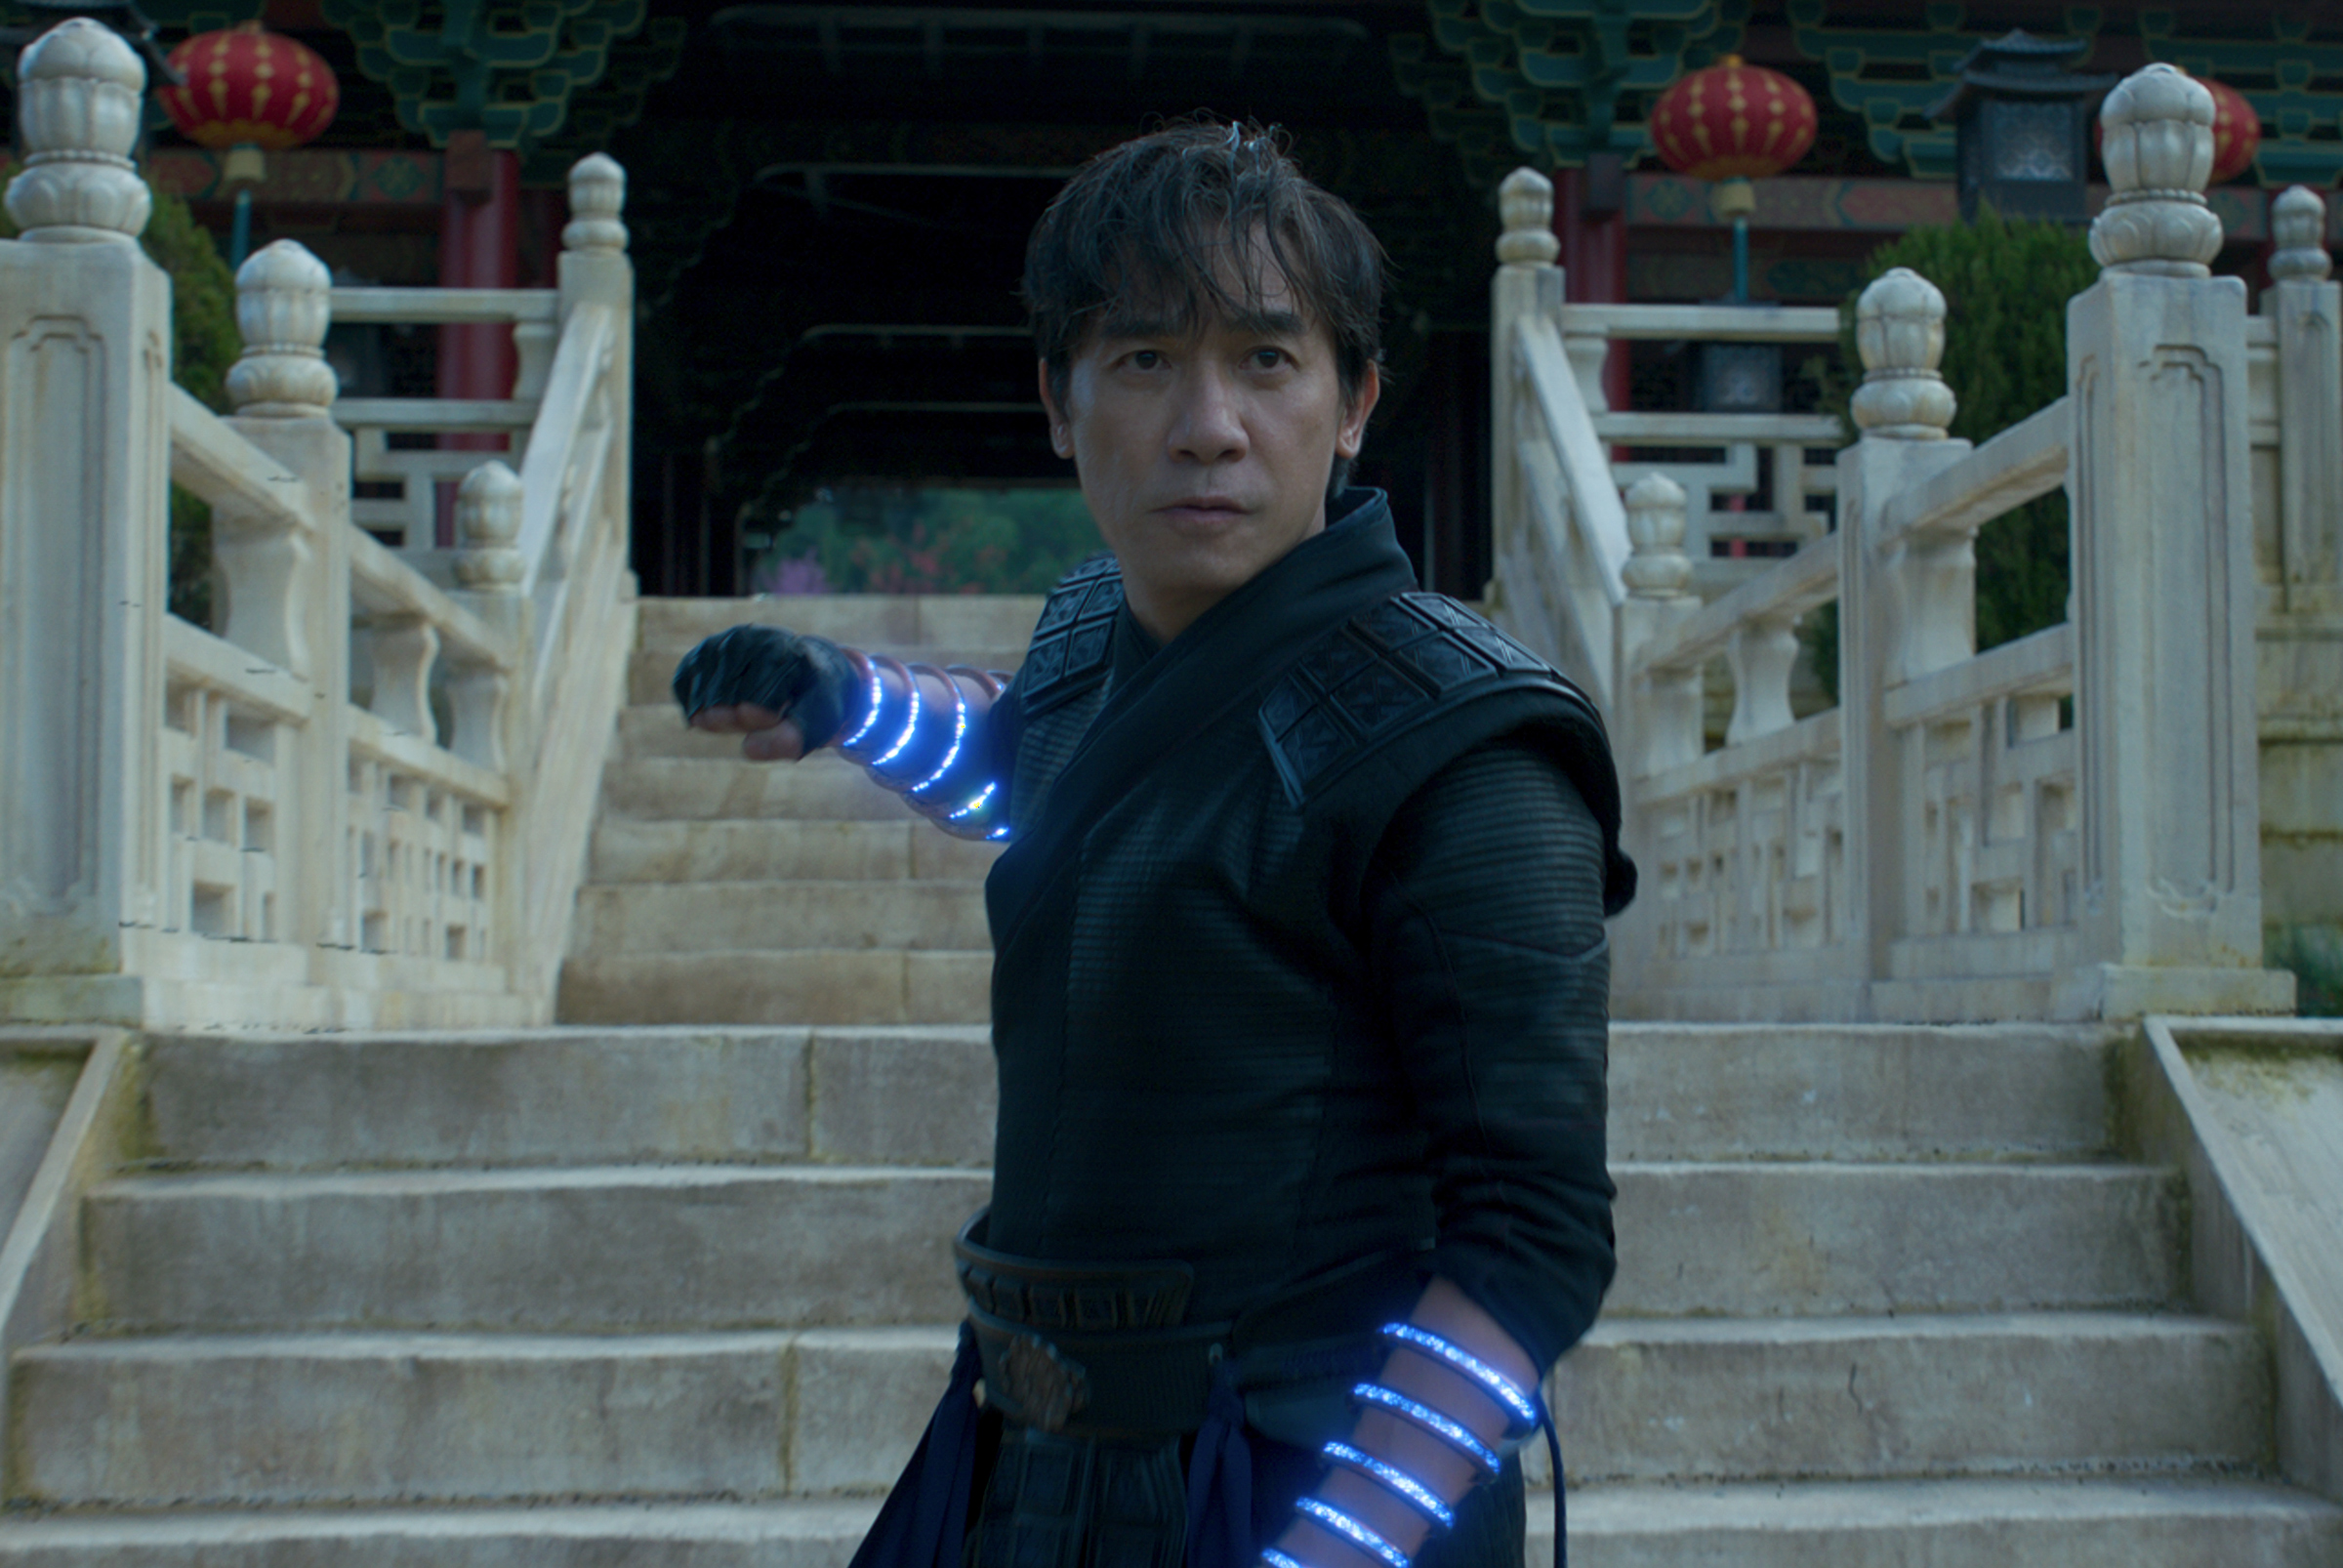 Tony Leung in Shang-Chi and the Legend of the Ten Rings, 2021.